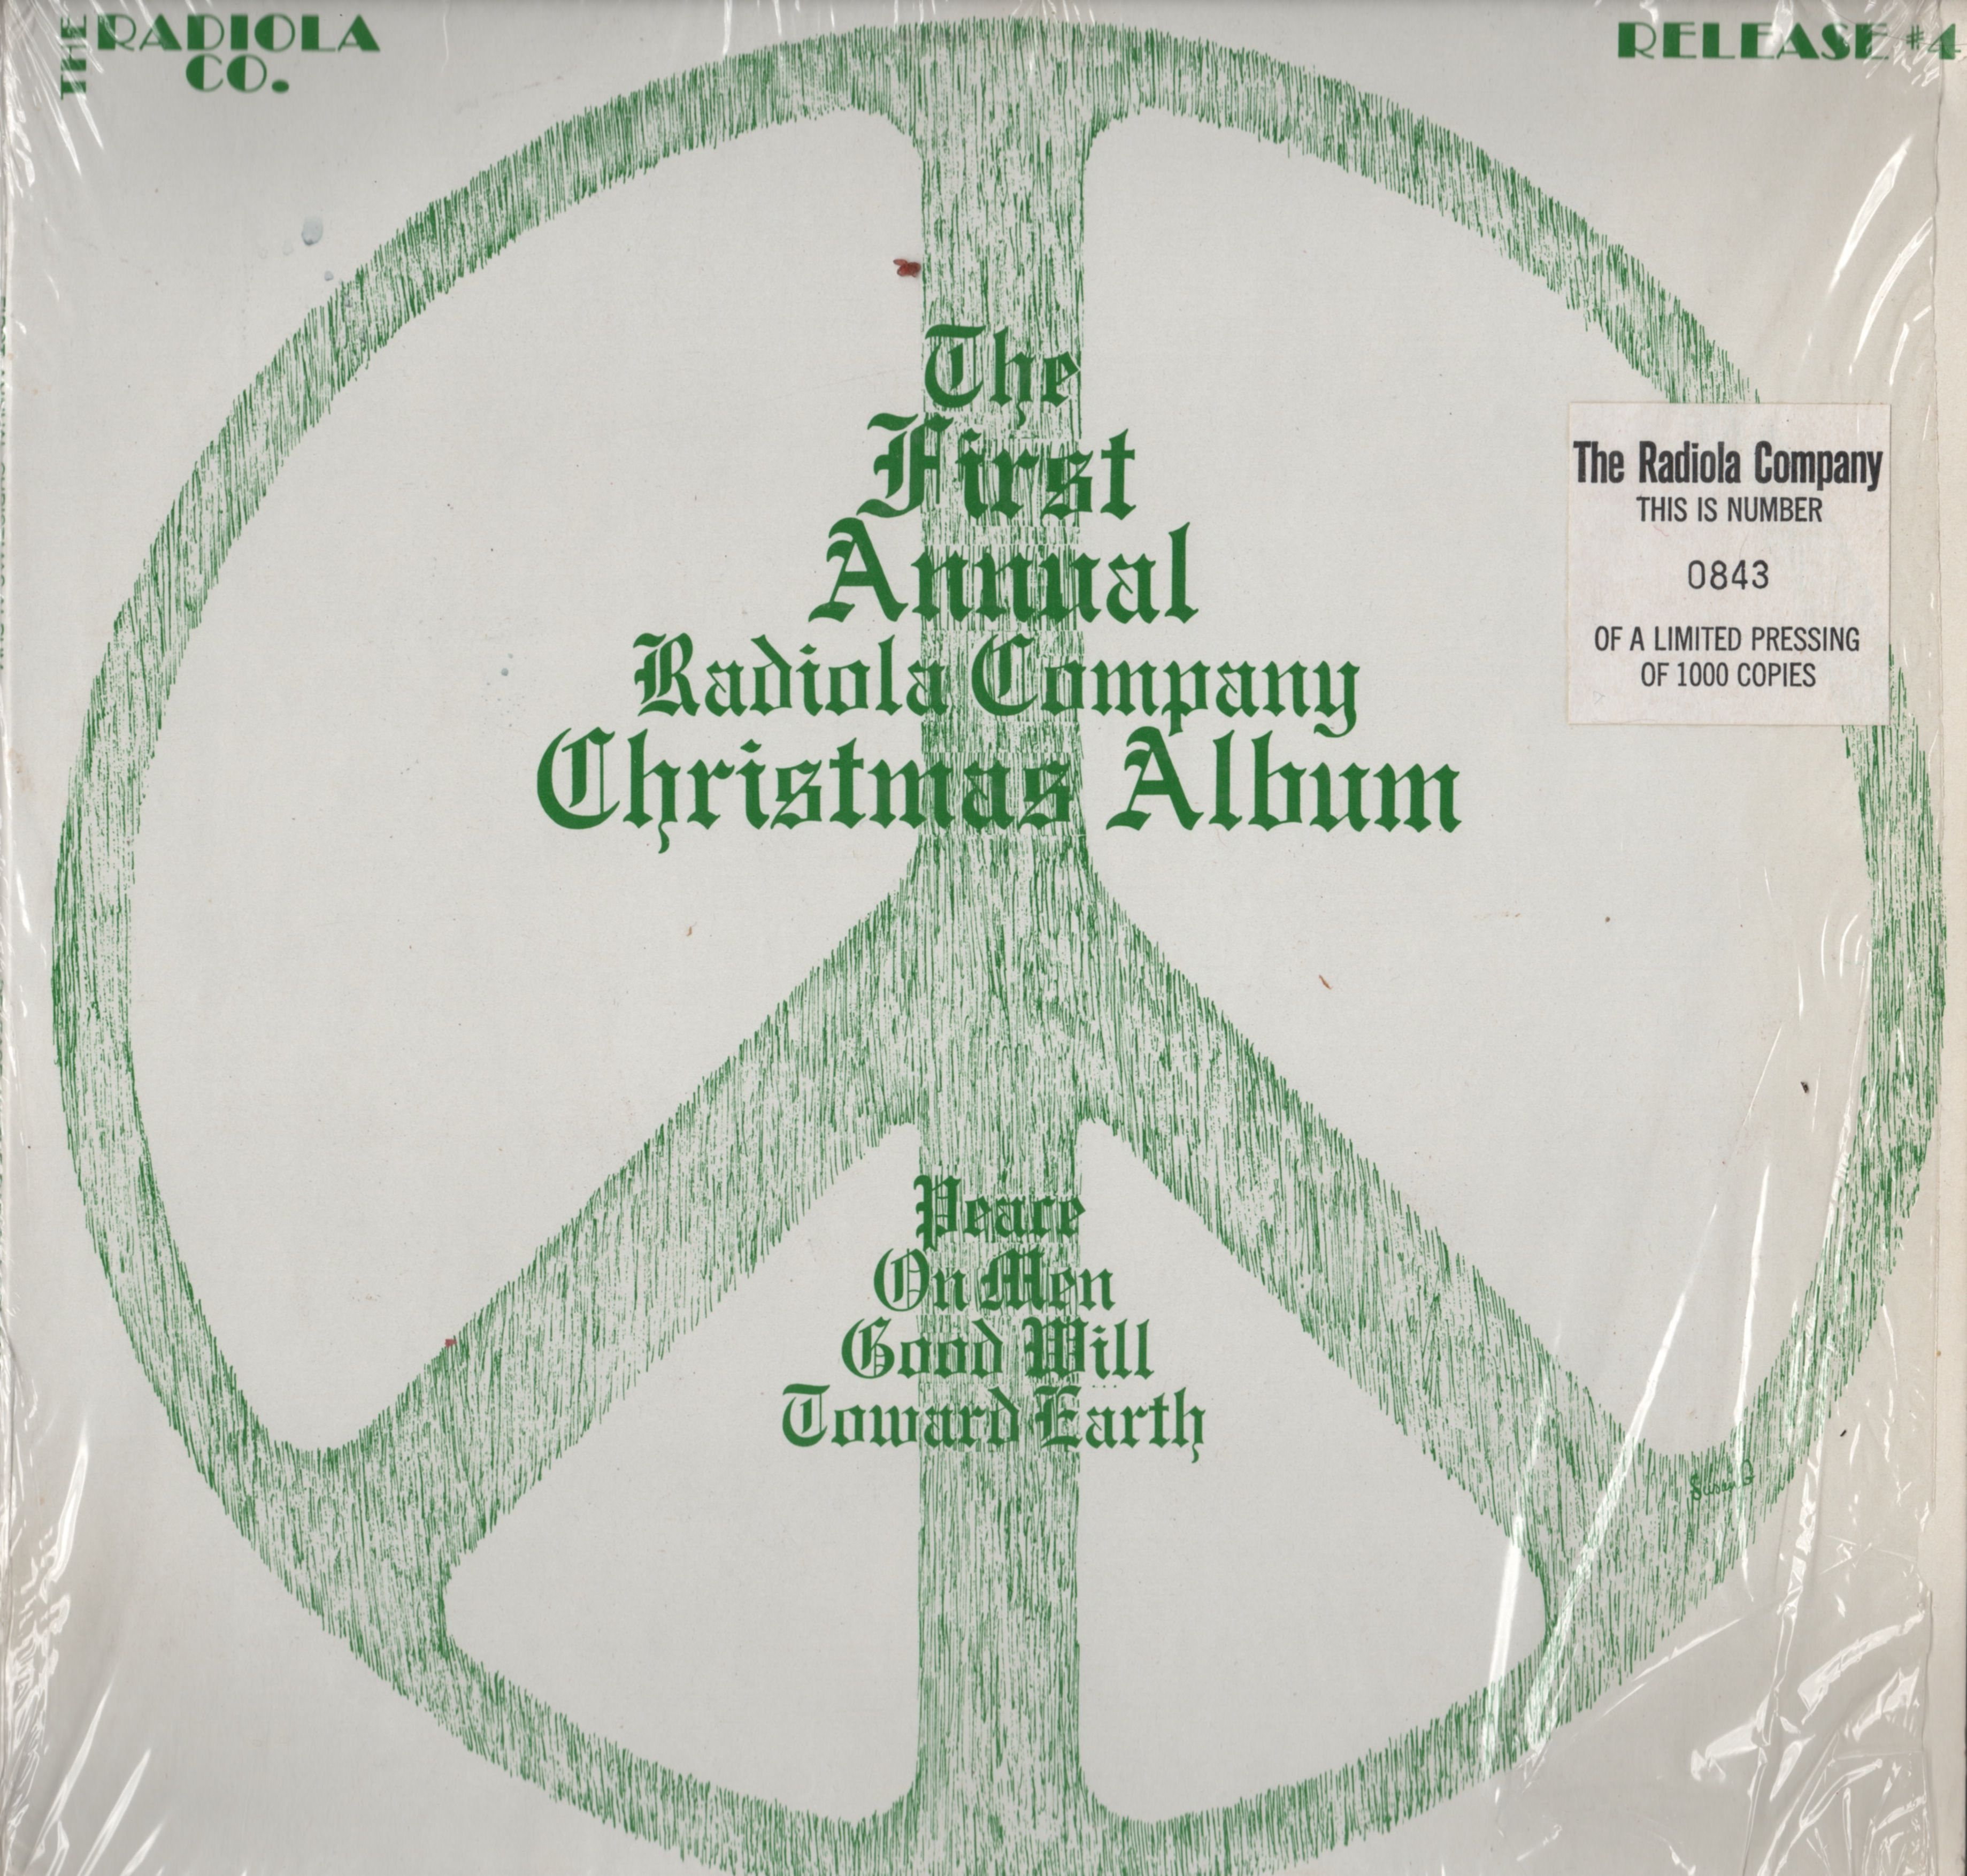 The First Annual Radiola Company Christmas Album, First Pressing, November, 1970, #843 out of 1000. Side A: The Amos 'n Andy Christmas Show, December 24, 1950 and Side B: Truth or Consequences, December 24, 1947